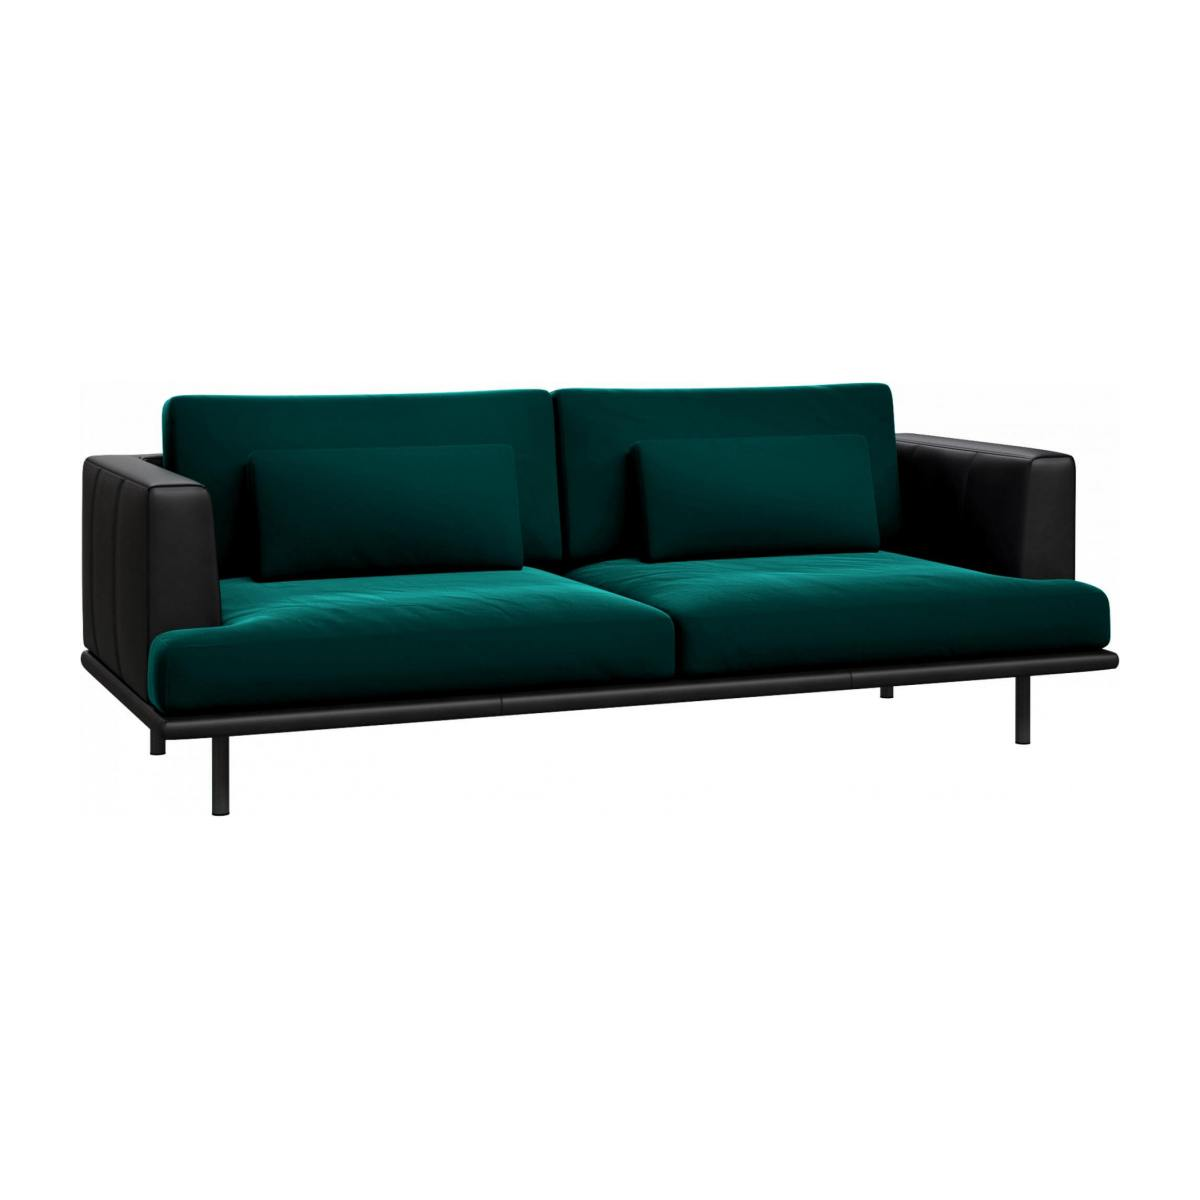 3 seater sofa in Super Velvet fabric, petrol blue with base and armrests in black leather n°3